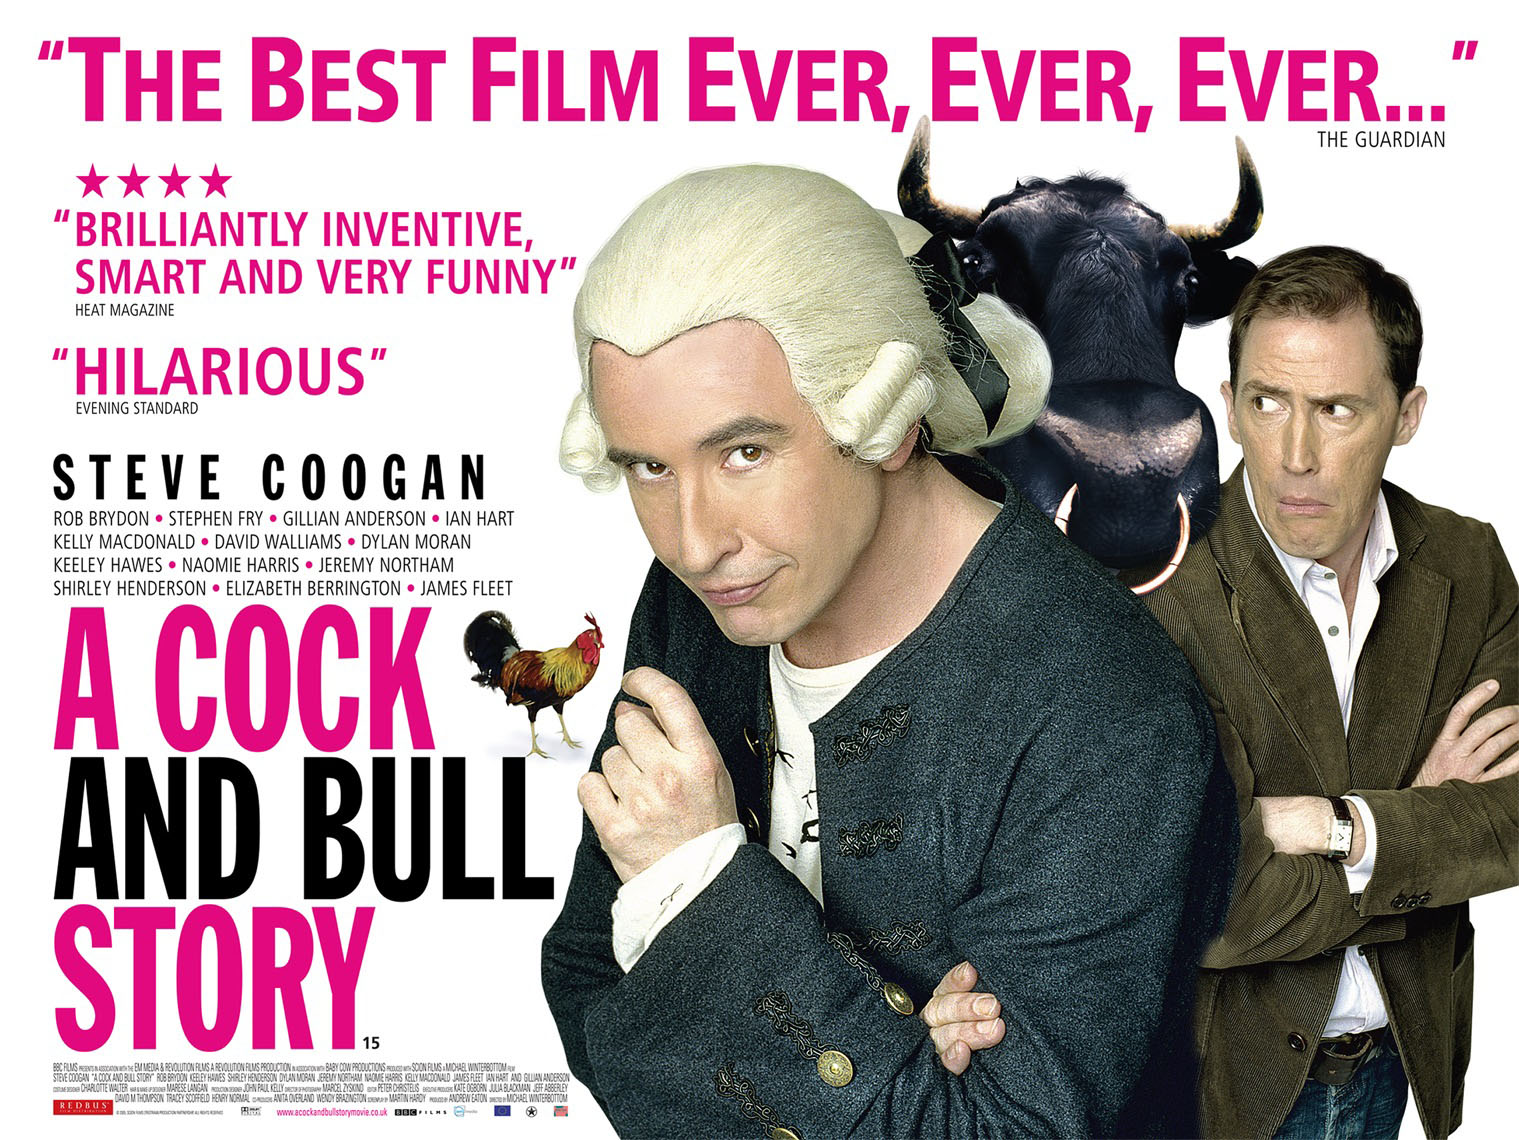 A Cock and Bull Story - BBC films